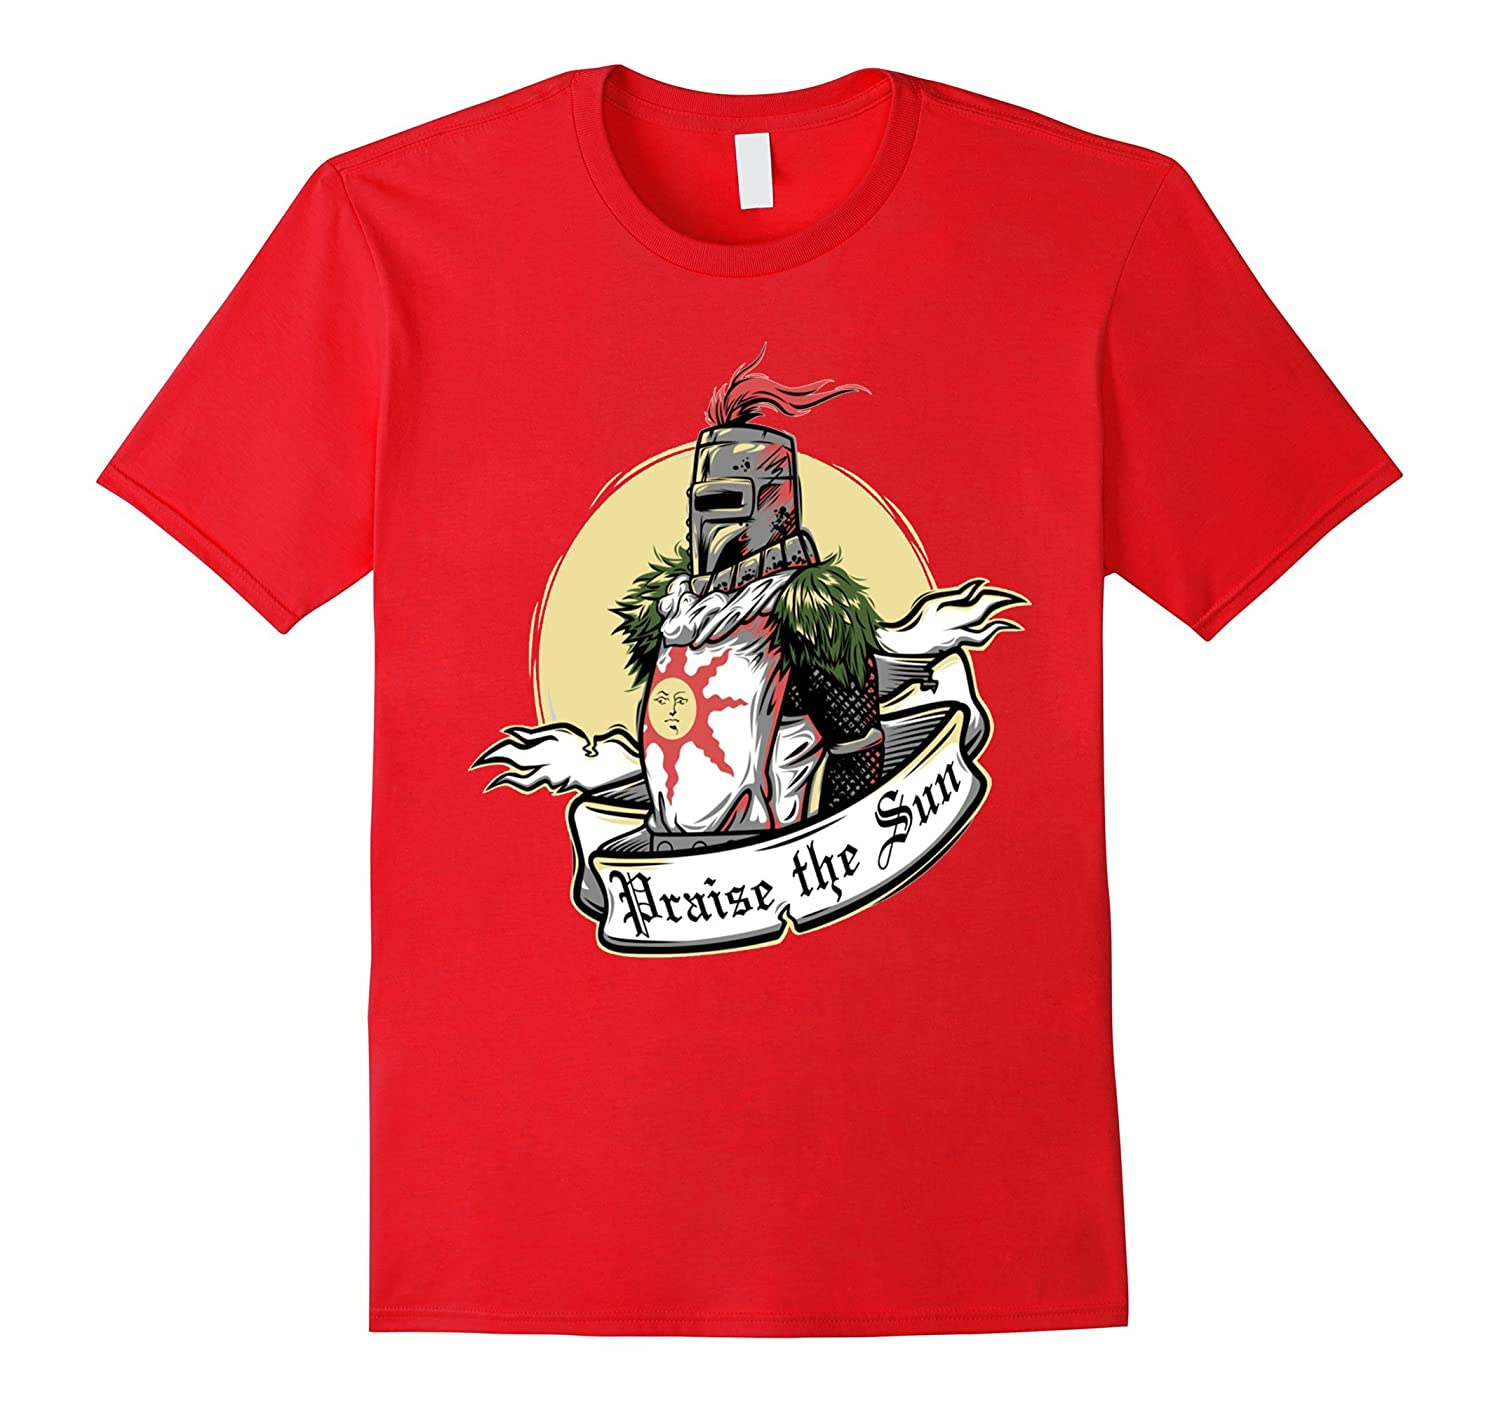 Solaire of Astora praise the sun t shirt-Art